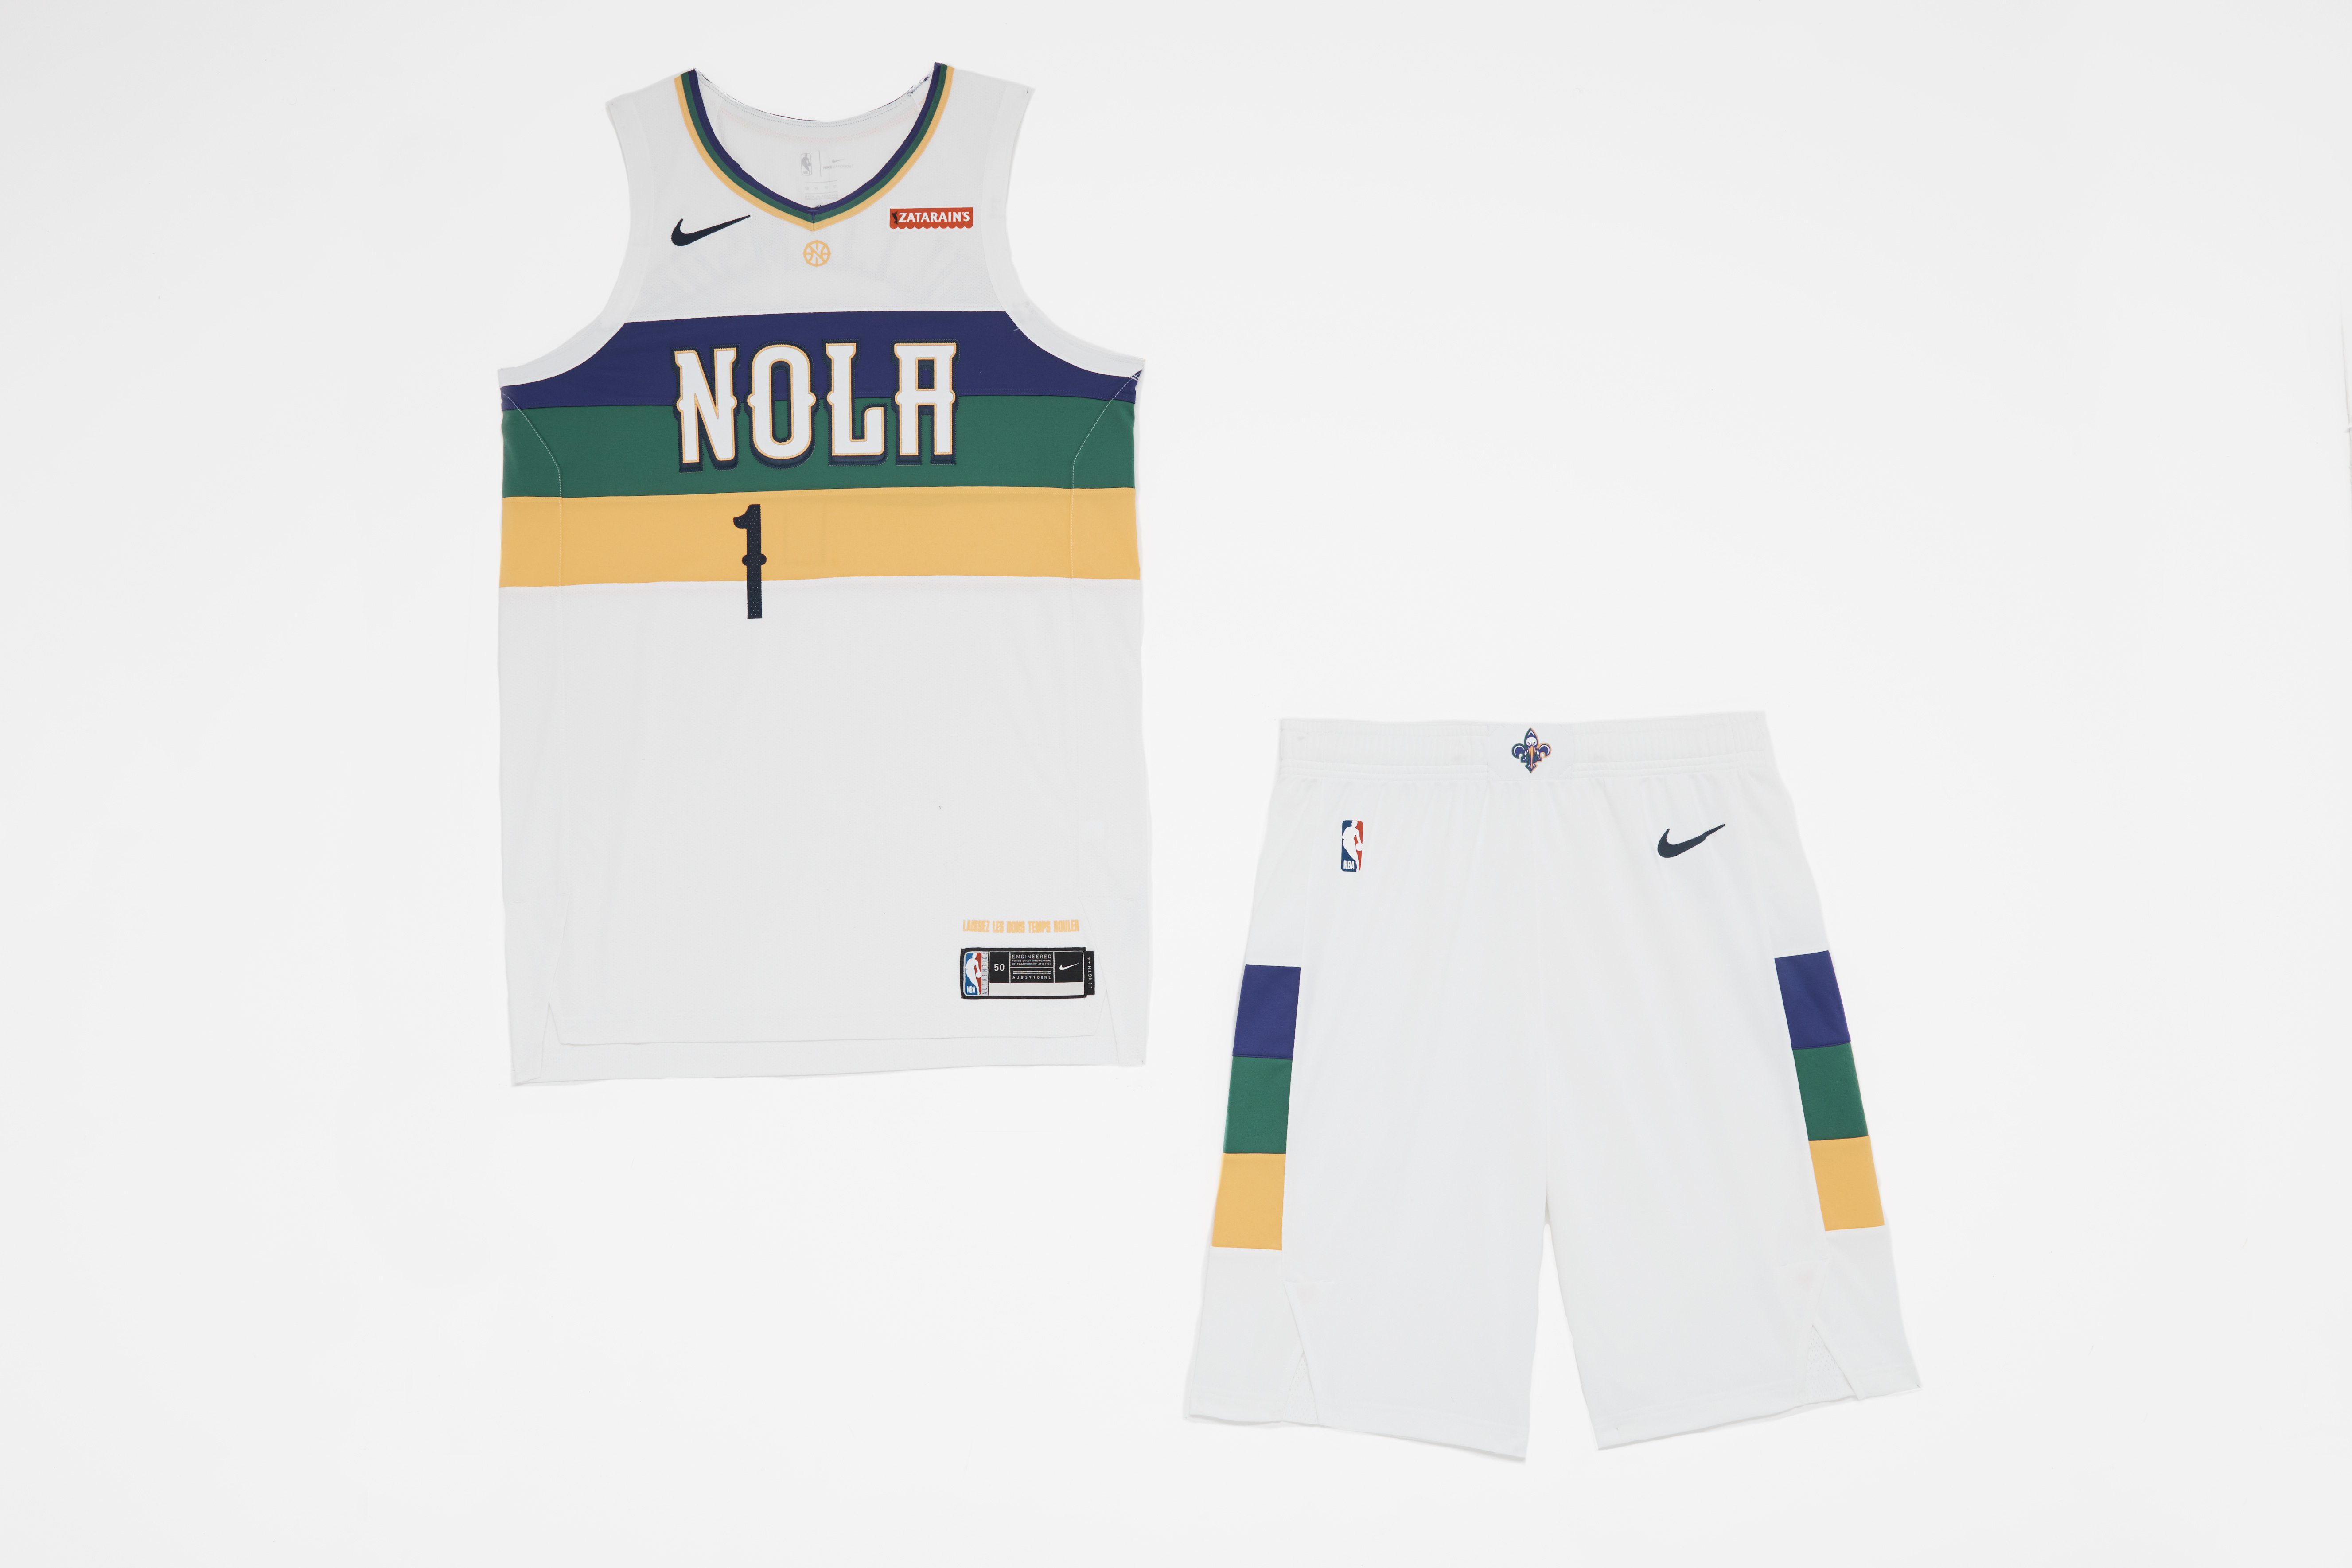 Ranking Every 'City Edition' Jersey: The Good, The Bad